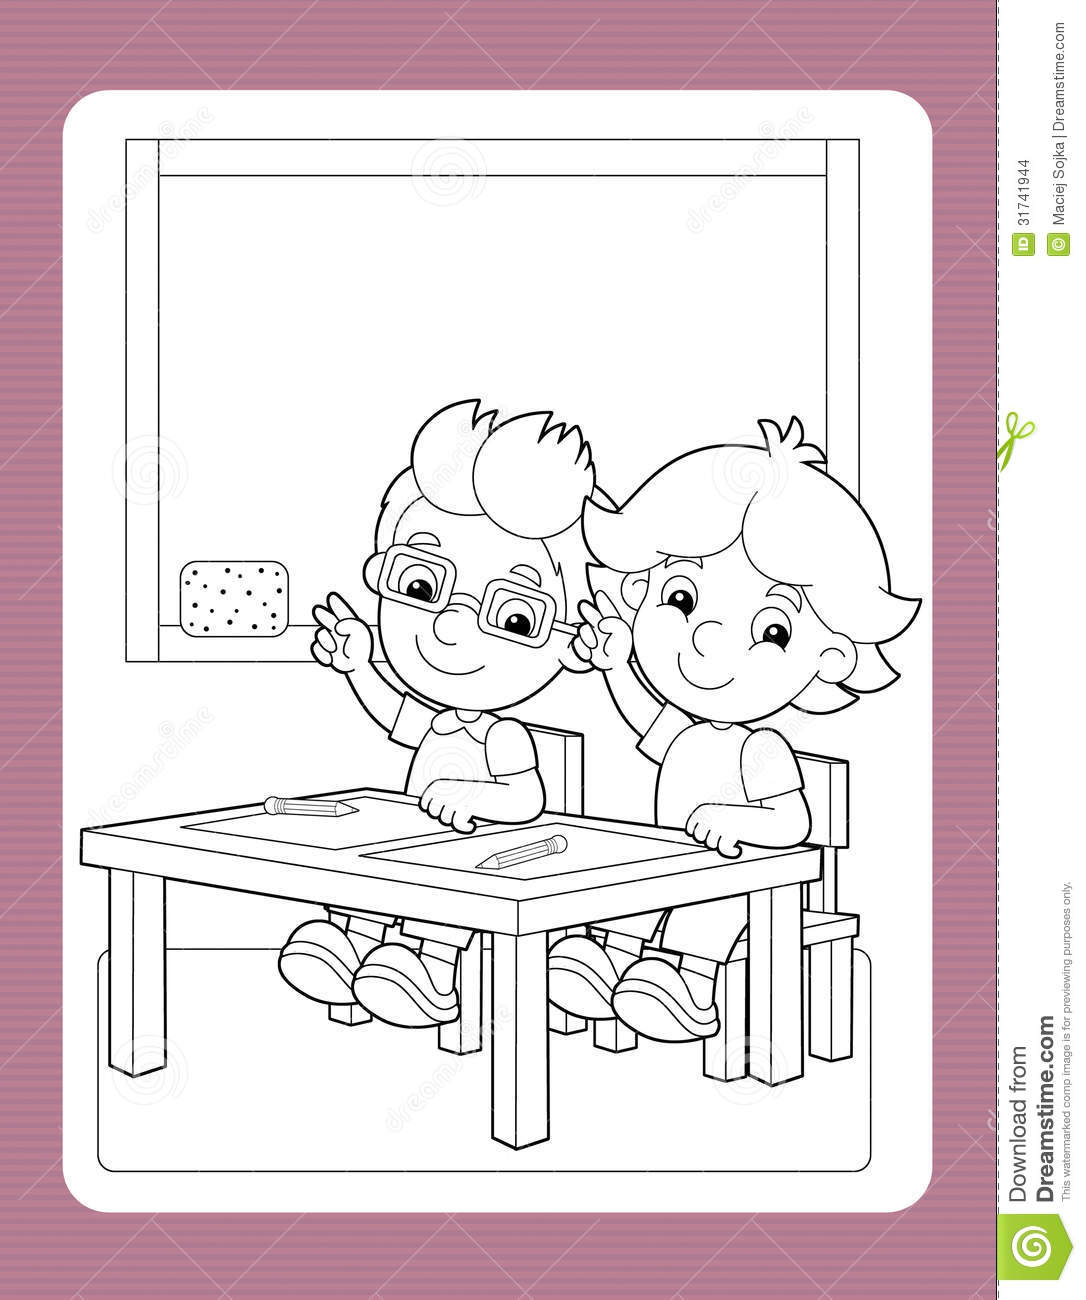 Free coloring pages for exercise - Royalty Free Stock Photo Download The Coloring Page With Exercise